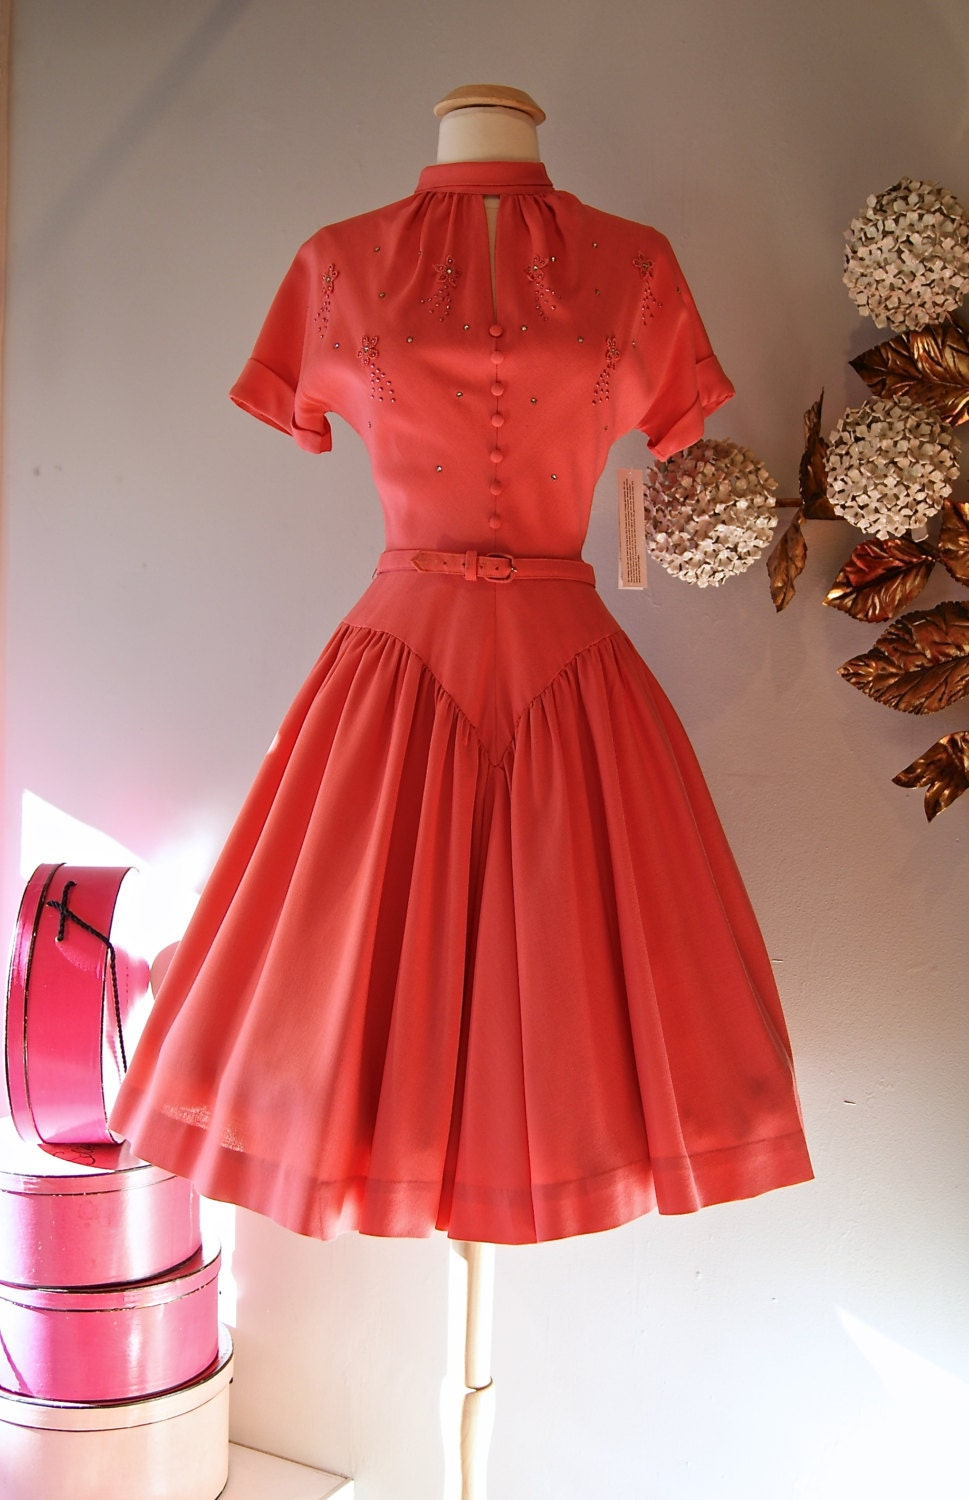 1950s Dress // Vintage 50s Coral Cotton Party Dress with